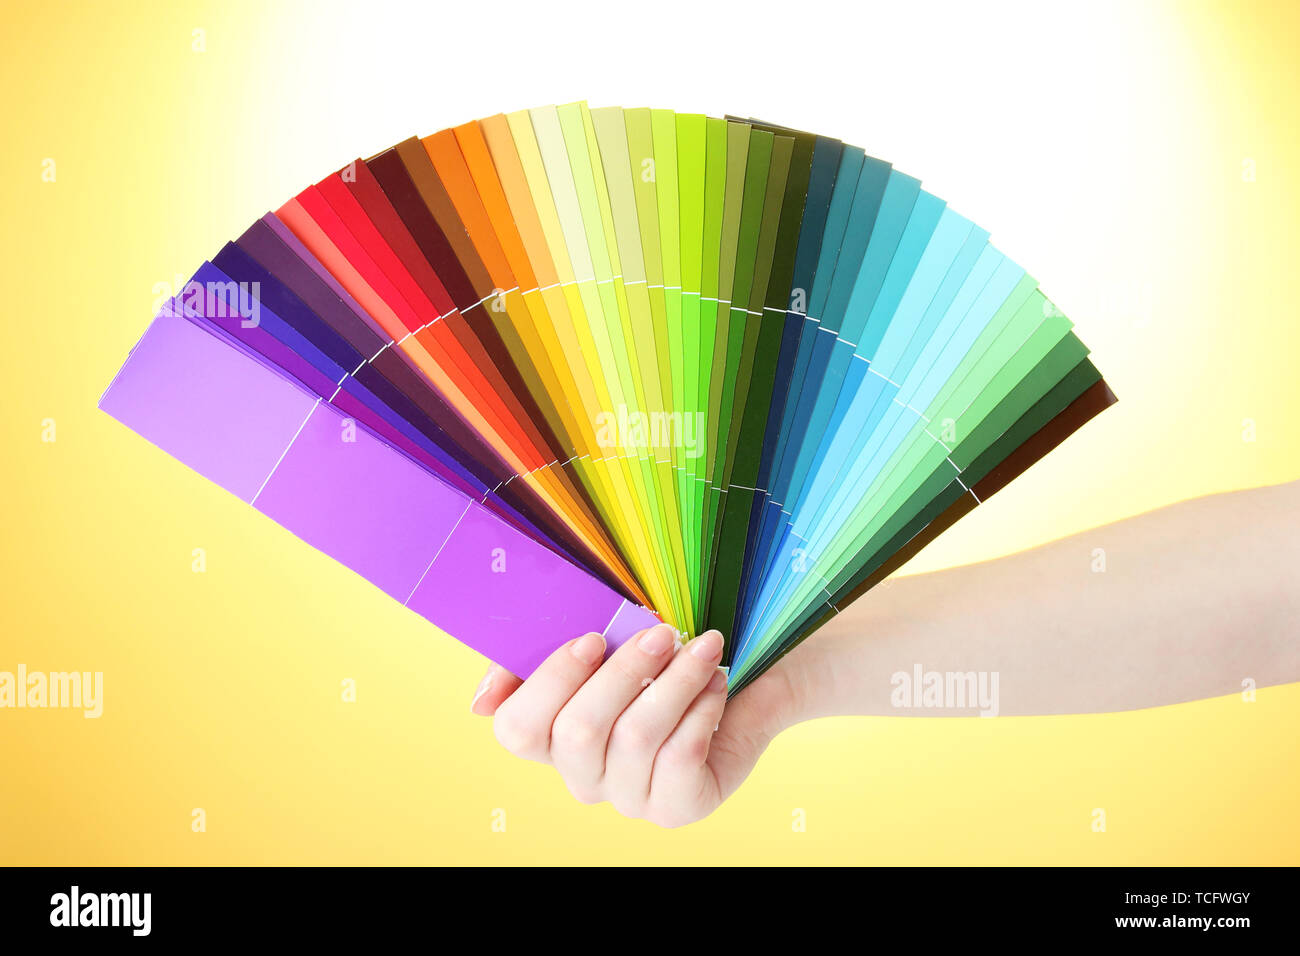 hand holding bright palette of colors on yellow background - Stock Image